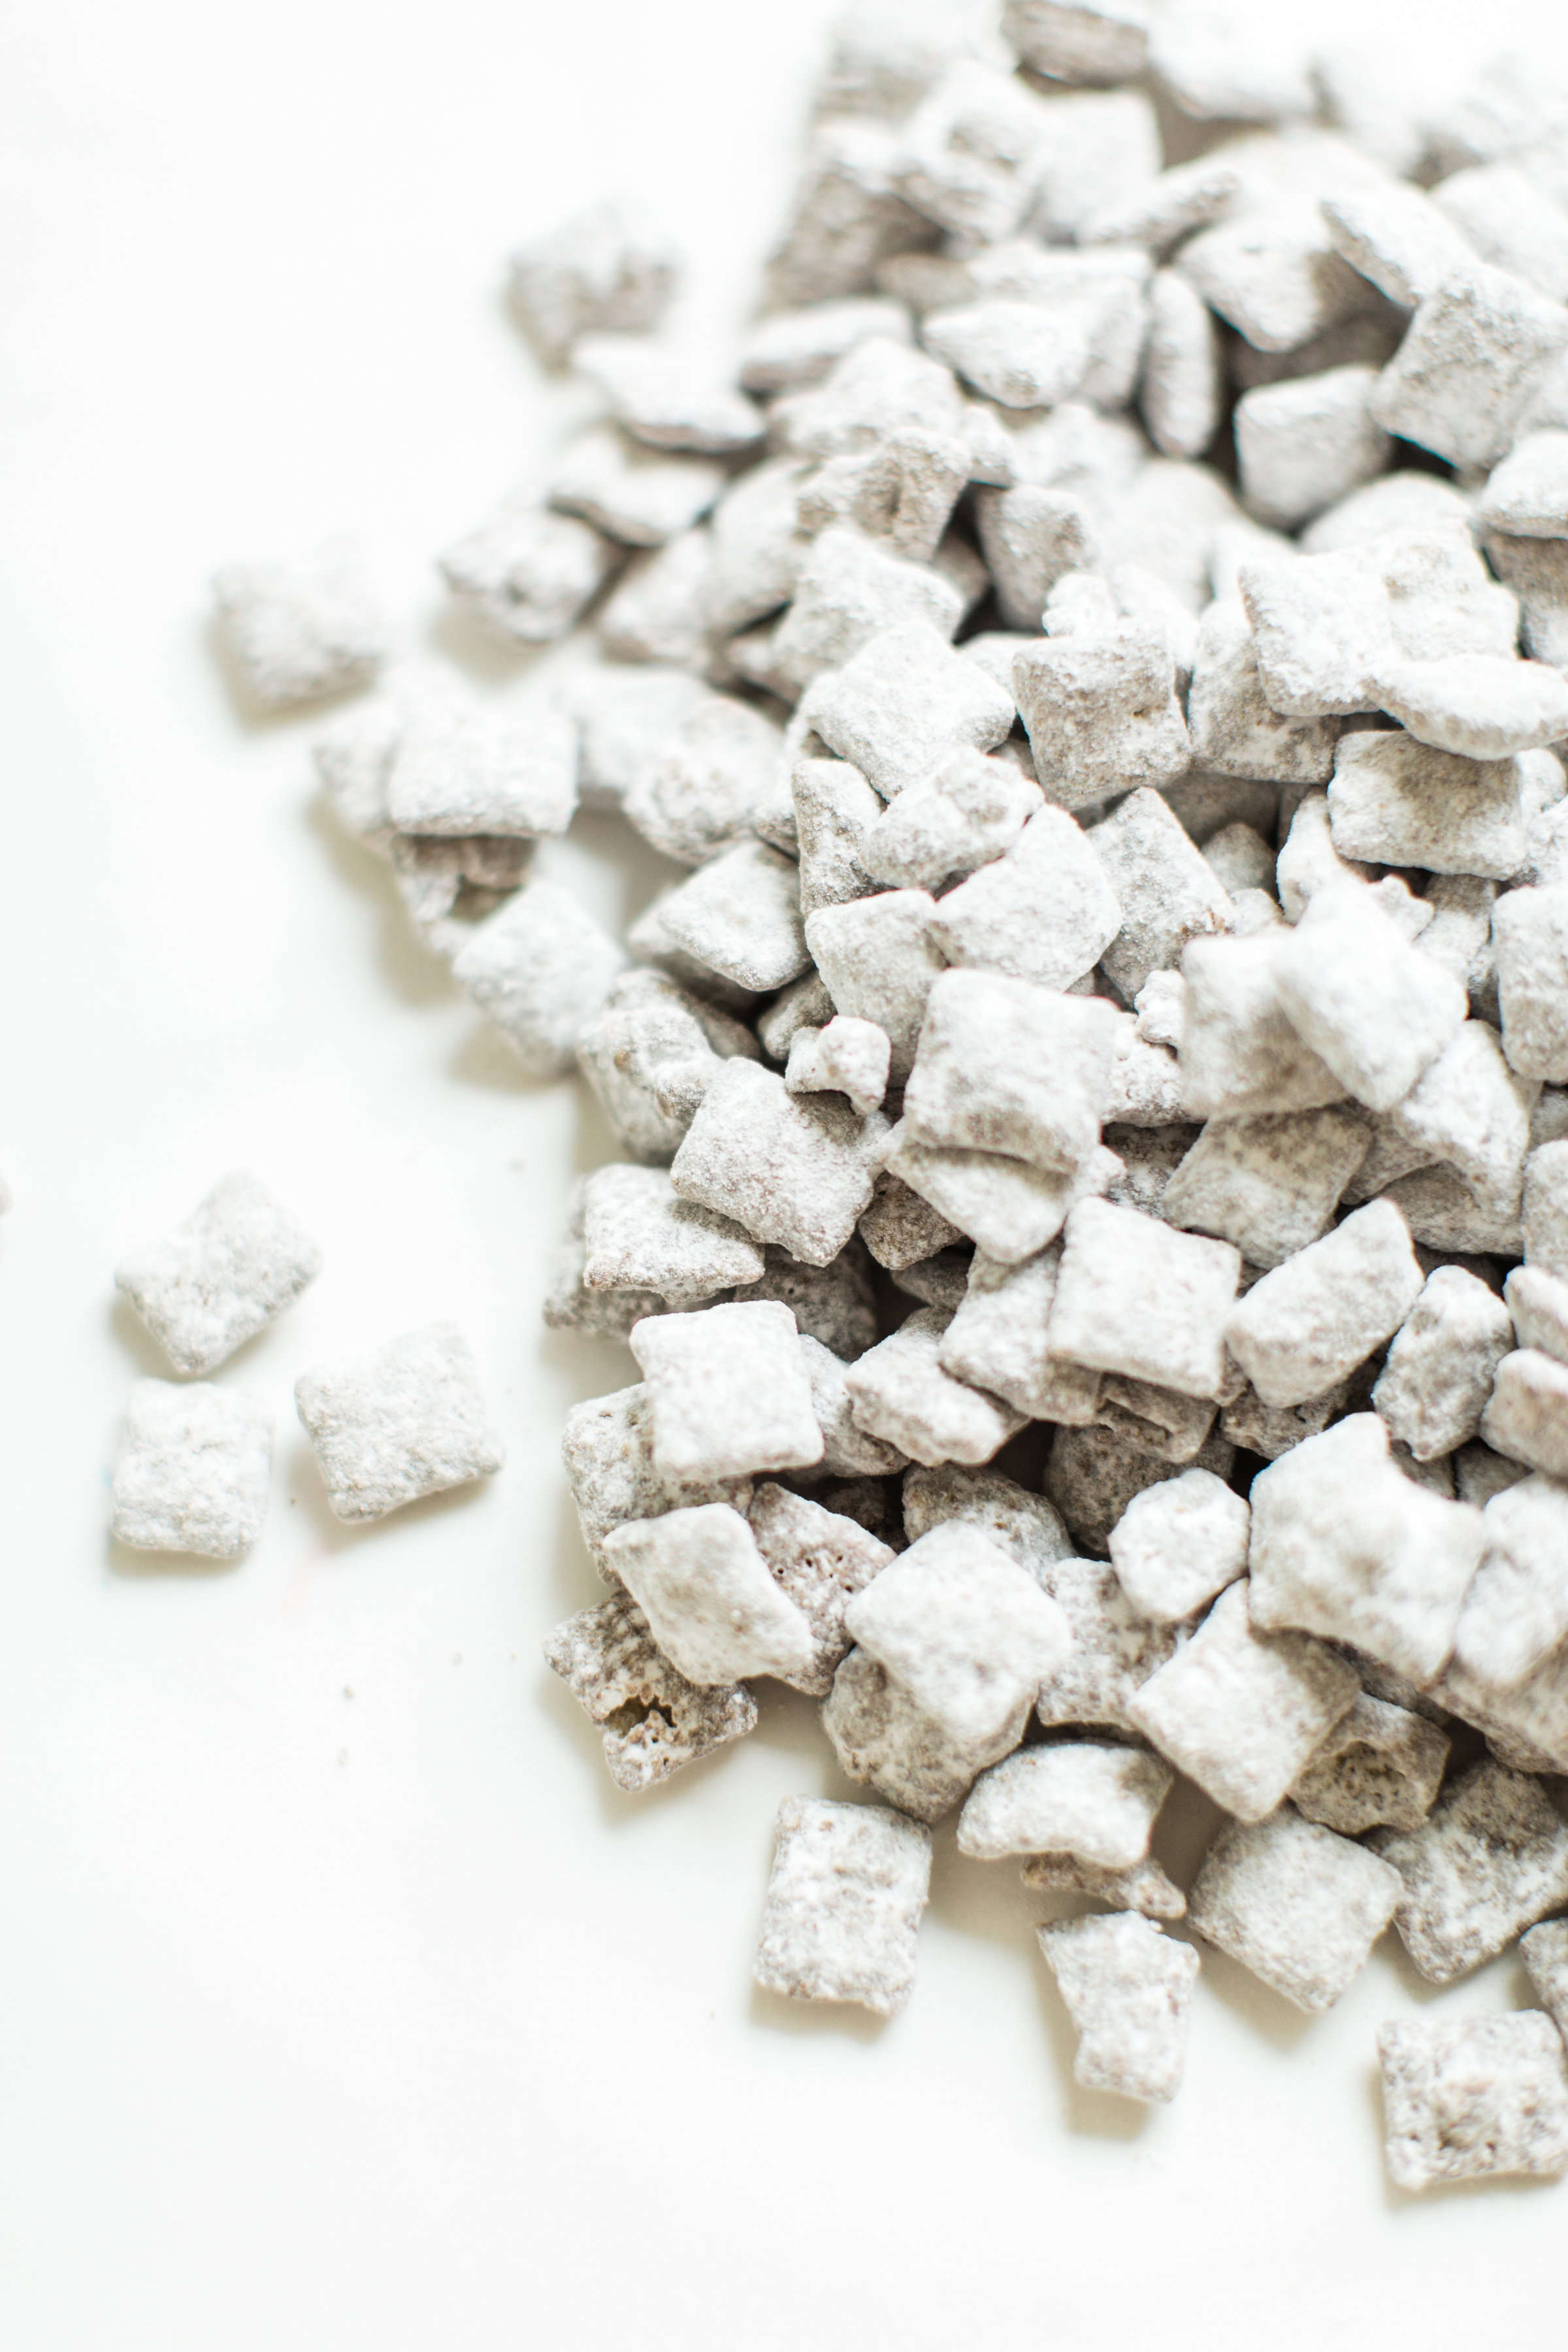 Positively addictive classic Puppy Chow Muddy Buddies - comes together in minutes, is no-bake, and can be made up in big batches - perfect for gifting! Click through for the recipe. #muddybuddies #puppychow #holidayrecipe #holidaygift #dairyfree #vegan #vegandessert | glitterinc.com | @glitterinc